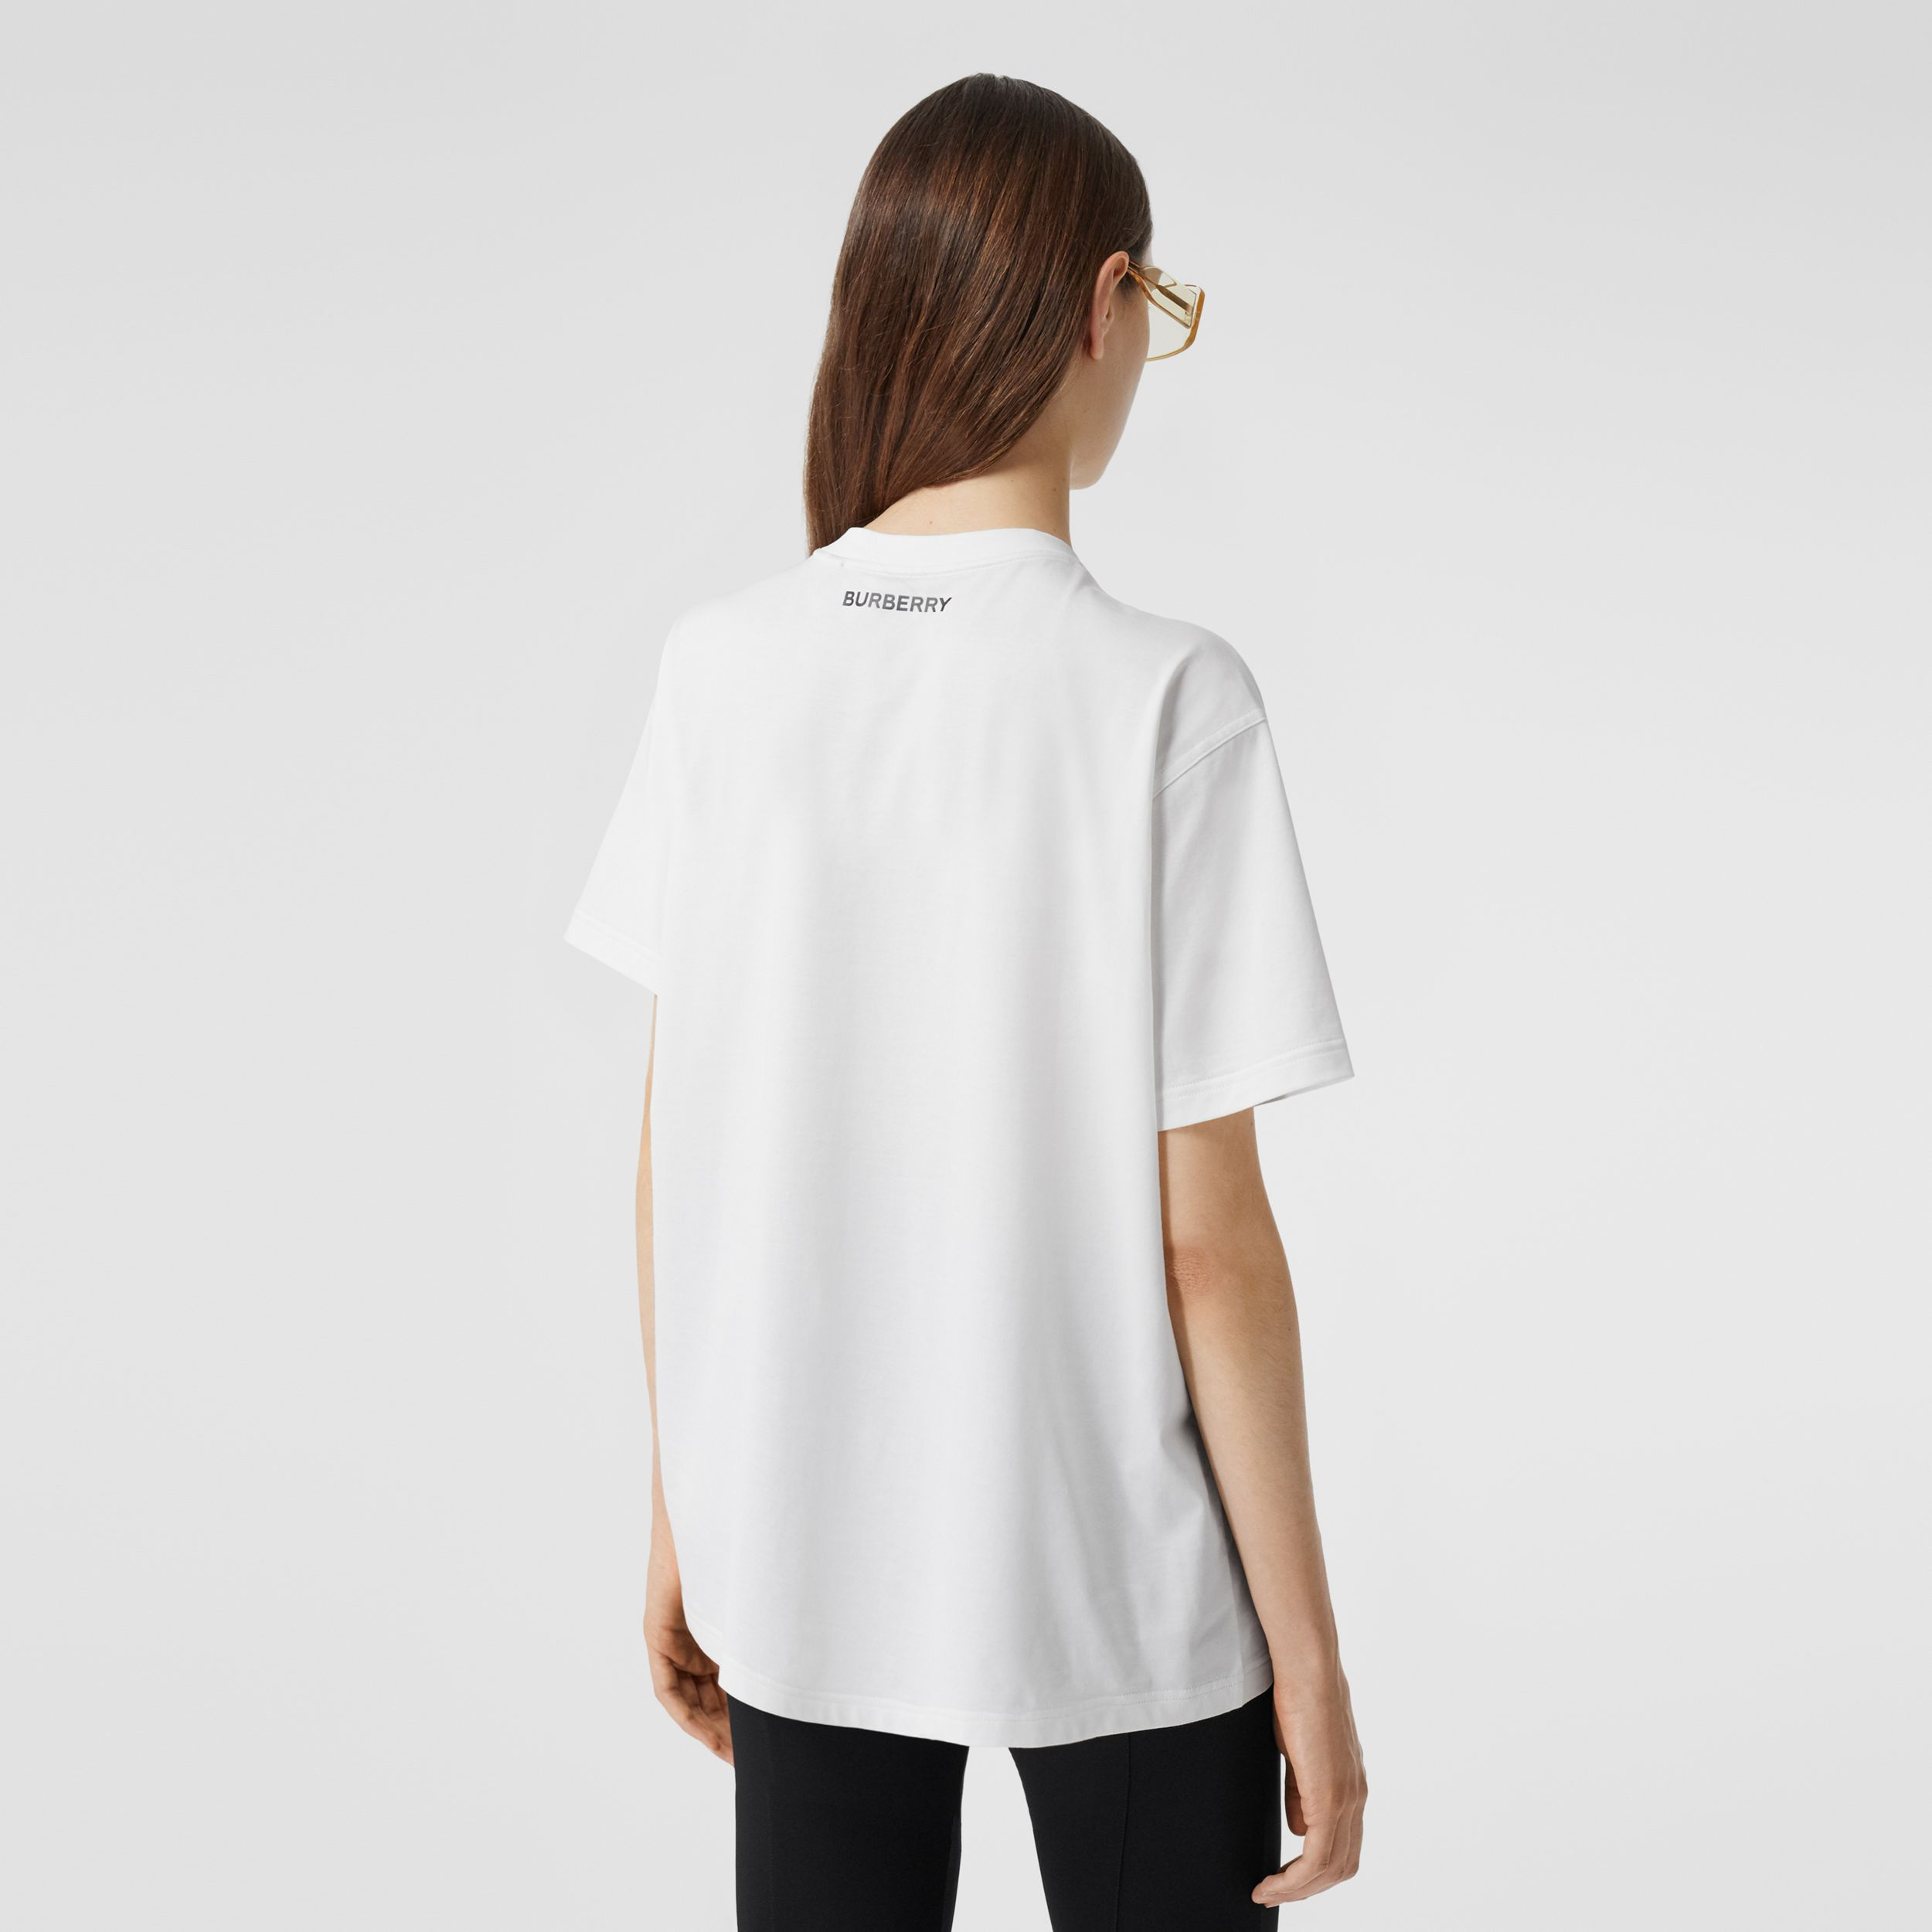 Slogan Print Cotton Oversized T-shirt in White - Women | Burberry - 3